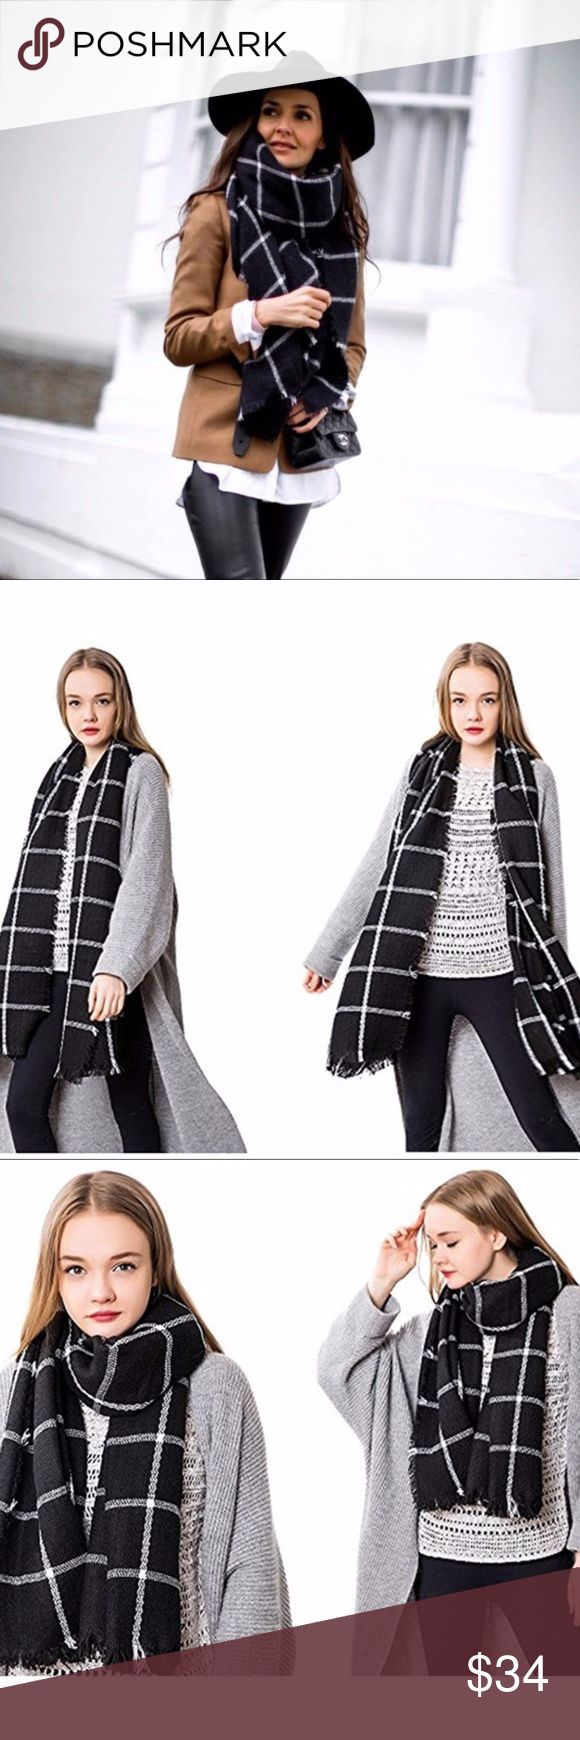 """Black & White Blanket Scarf MSRP $36 Cozy and cute Black and White Blanket Scarf // our 'Nova' Scarf  Stay warm and fashionable these upcoming cold months in our Nova scarf which includes; black and white checked pattern, square scarf, super soft and warm, can be worn multiple ways!  BLANKET SCARF  MODA Boutique 100% acrylic  Measurements: 55"""" x 55"""" Moda boutique SF modabyboutique  MODA-0002SB Moda Boutique Accessories Scarves & Wraps"""